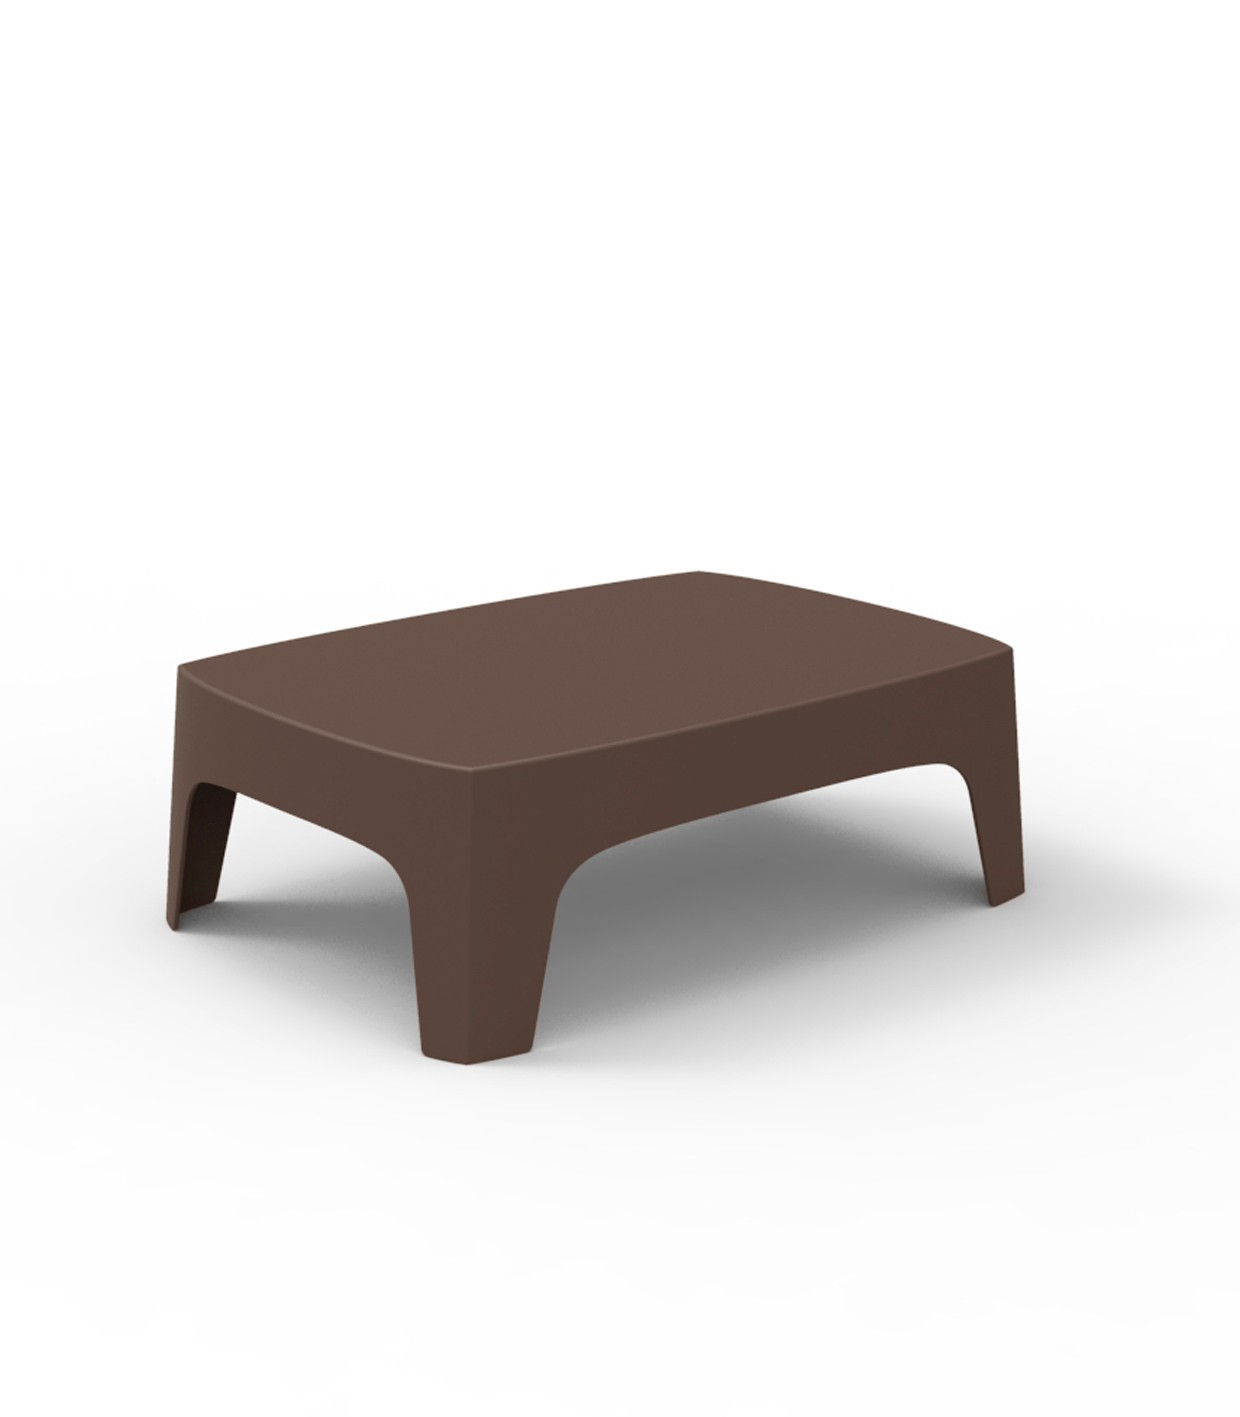 Table VondomBronze Basse Solid De Table Basse TKJlFc31